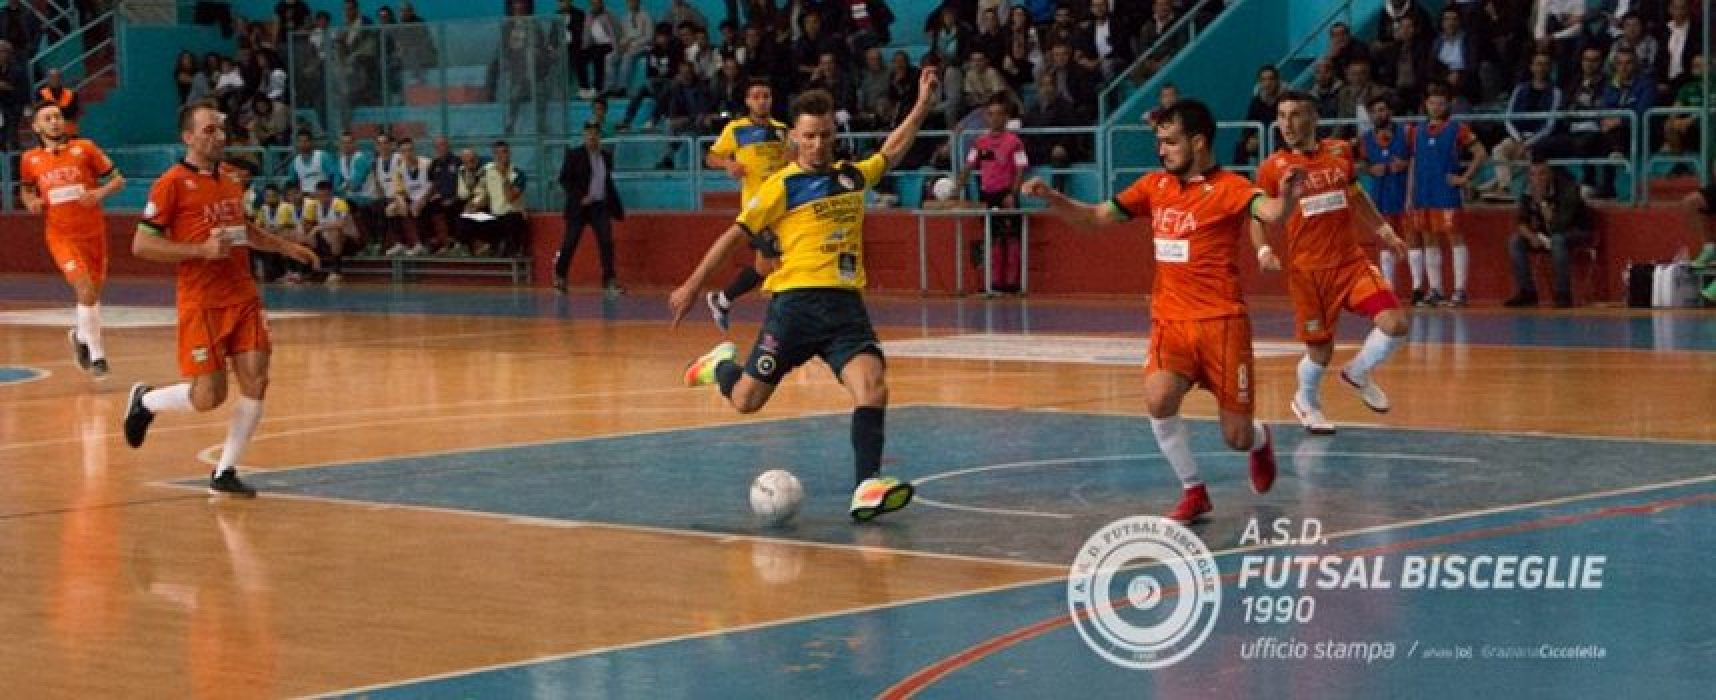 Futsal Bisceglie – Meta 2-3 / HIGHLIGHTS VIDEO